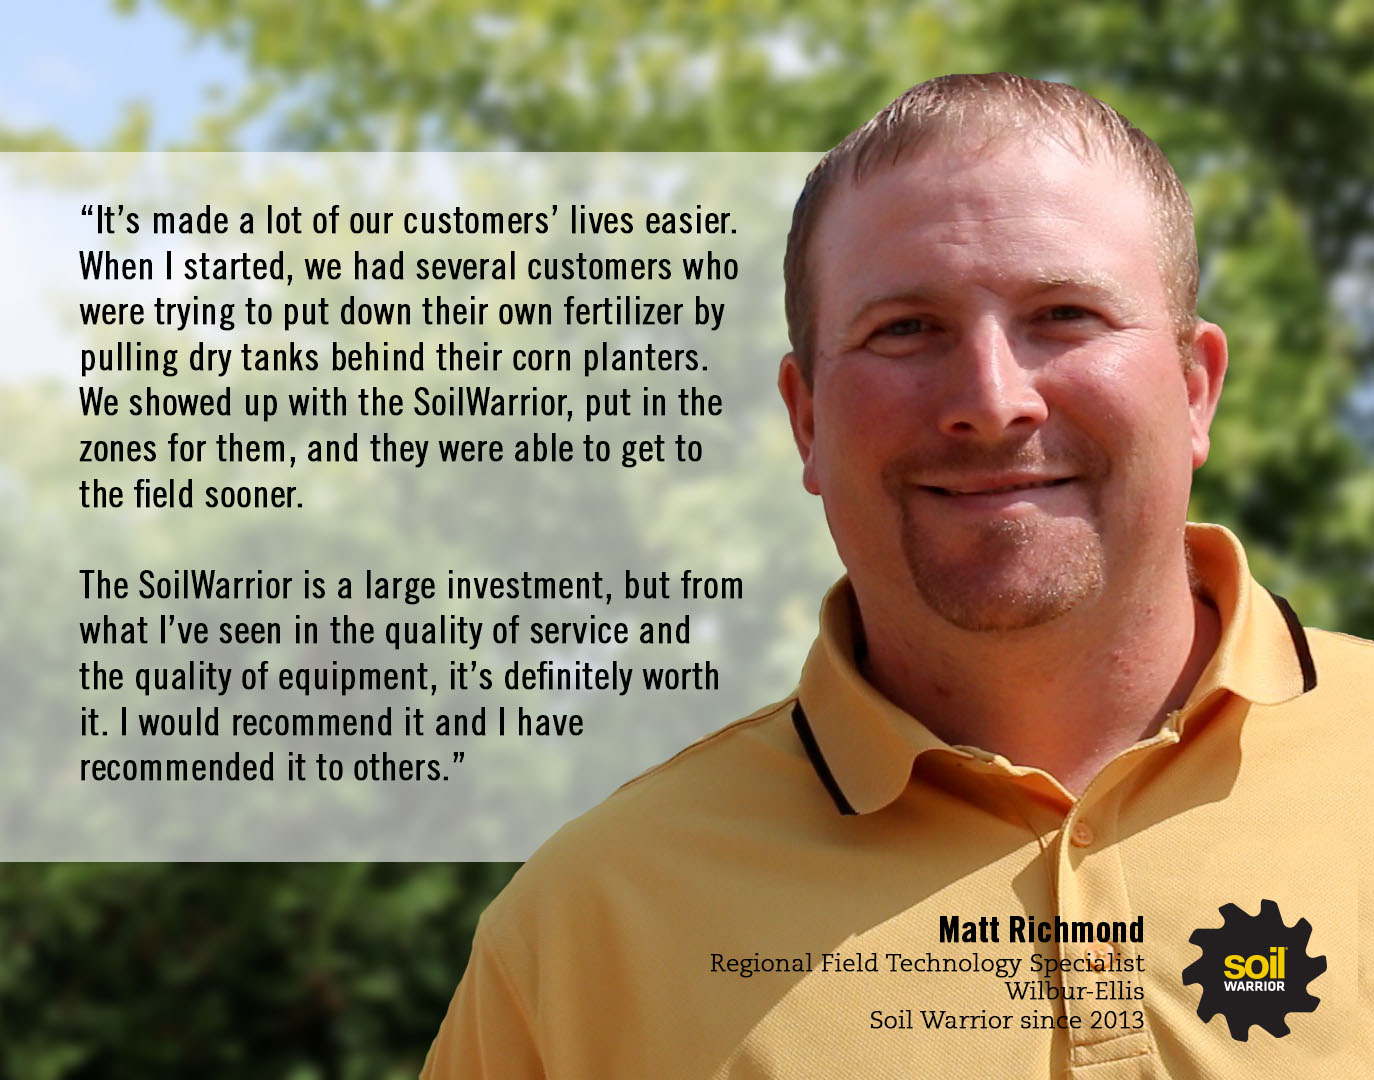 The SoilWarrior is a large investment, but from what I've seen in the quality of service and the quality of equipment, it's definitely worth it. - Matt Richmond